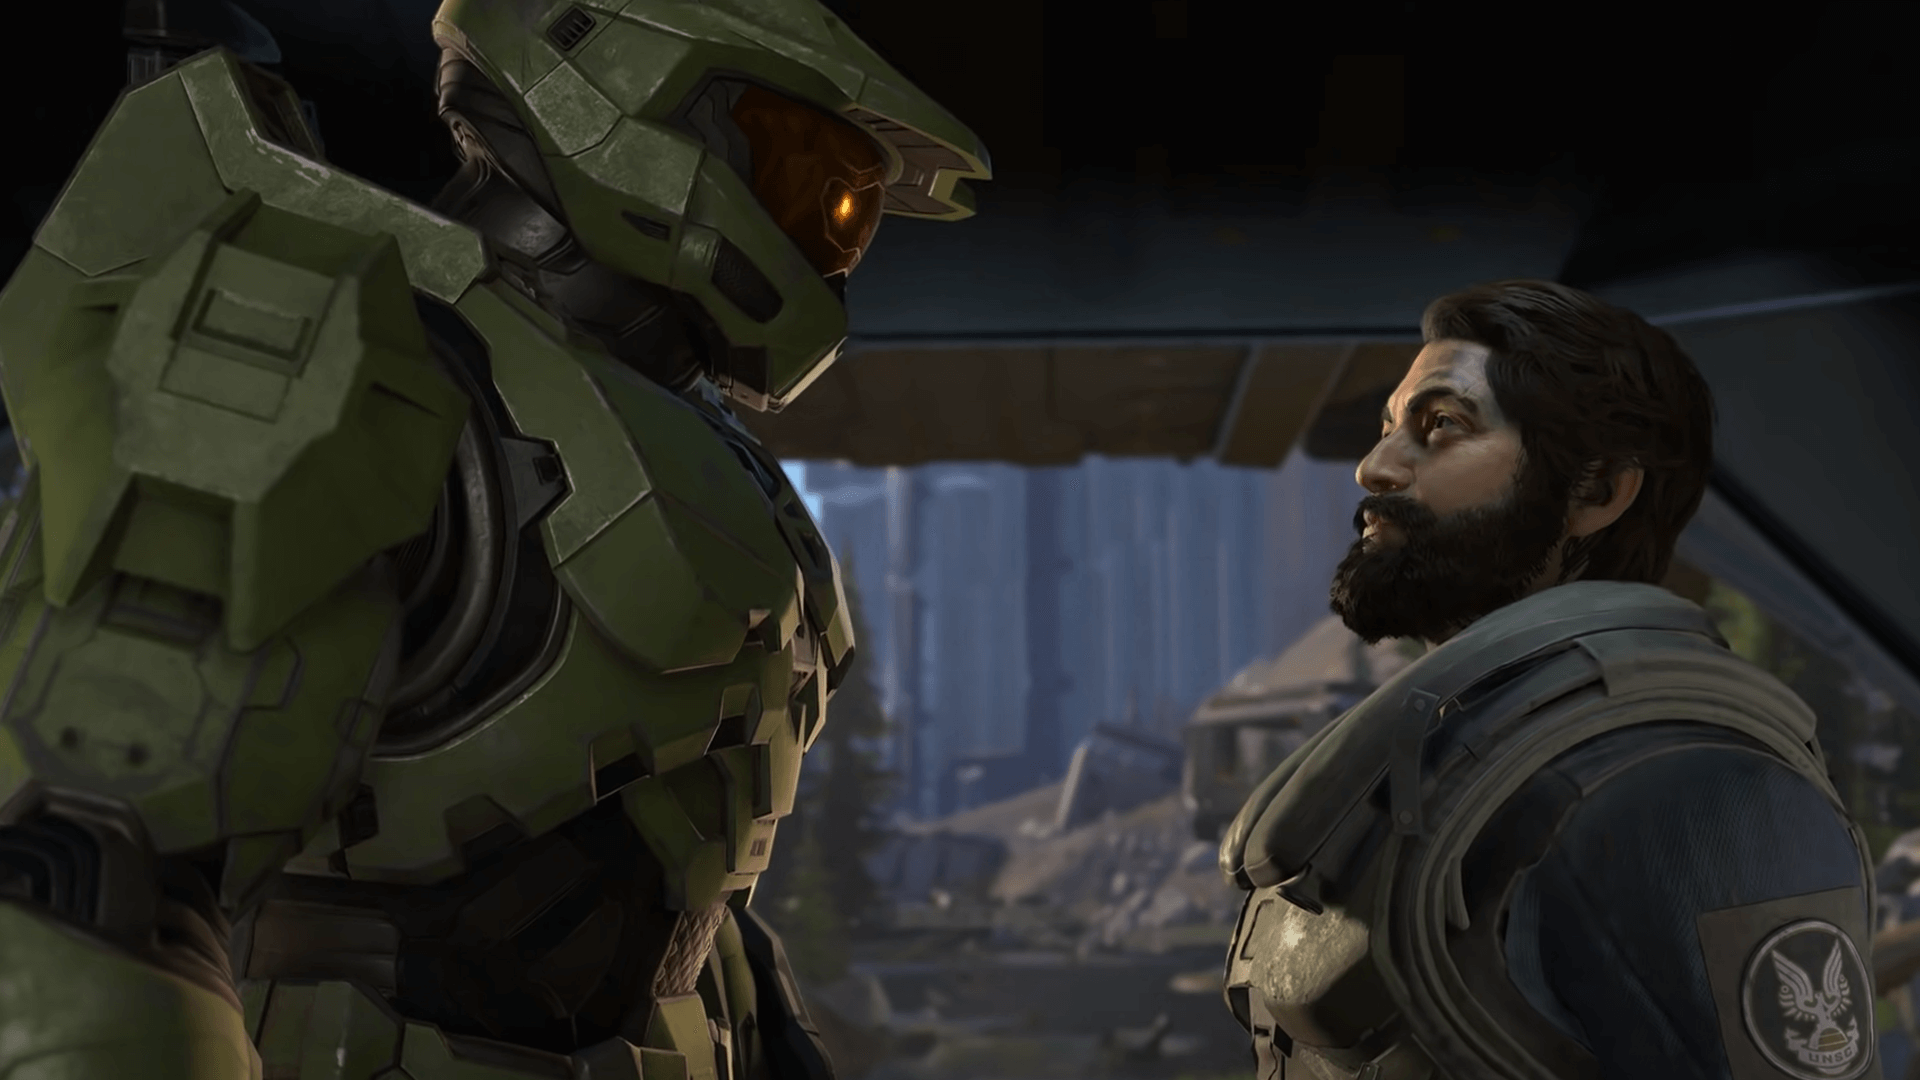 Halo Infinite Will Get Cross-Platform and Progression with PC